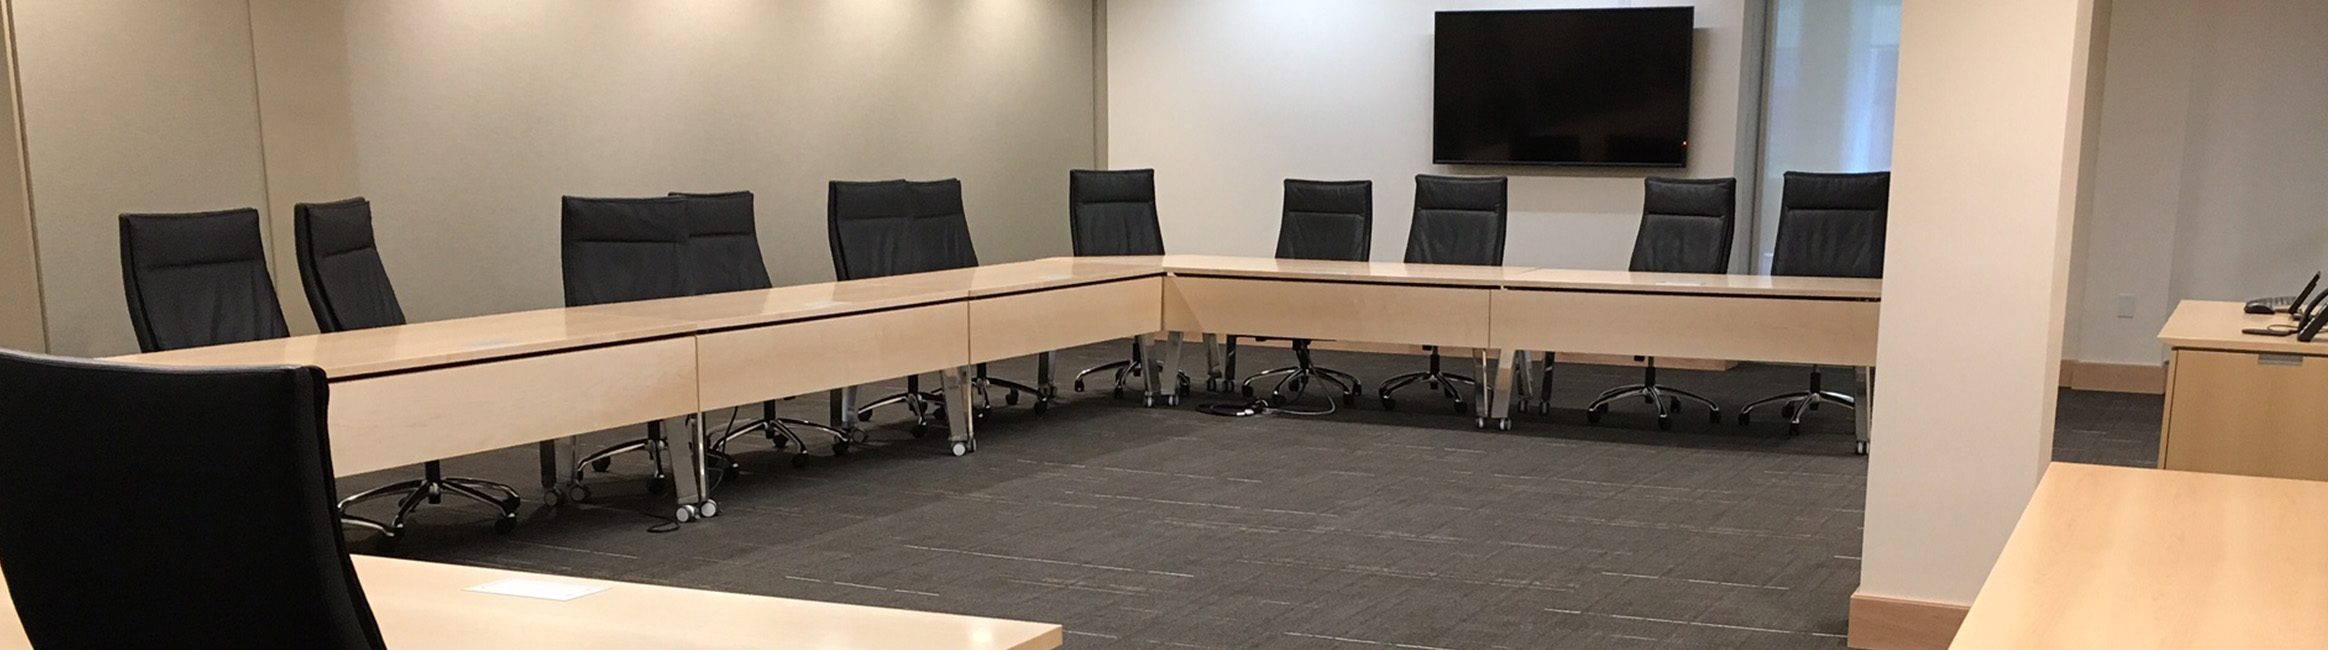 Photo of the board room in Cabell Library